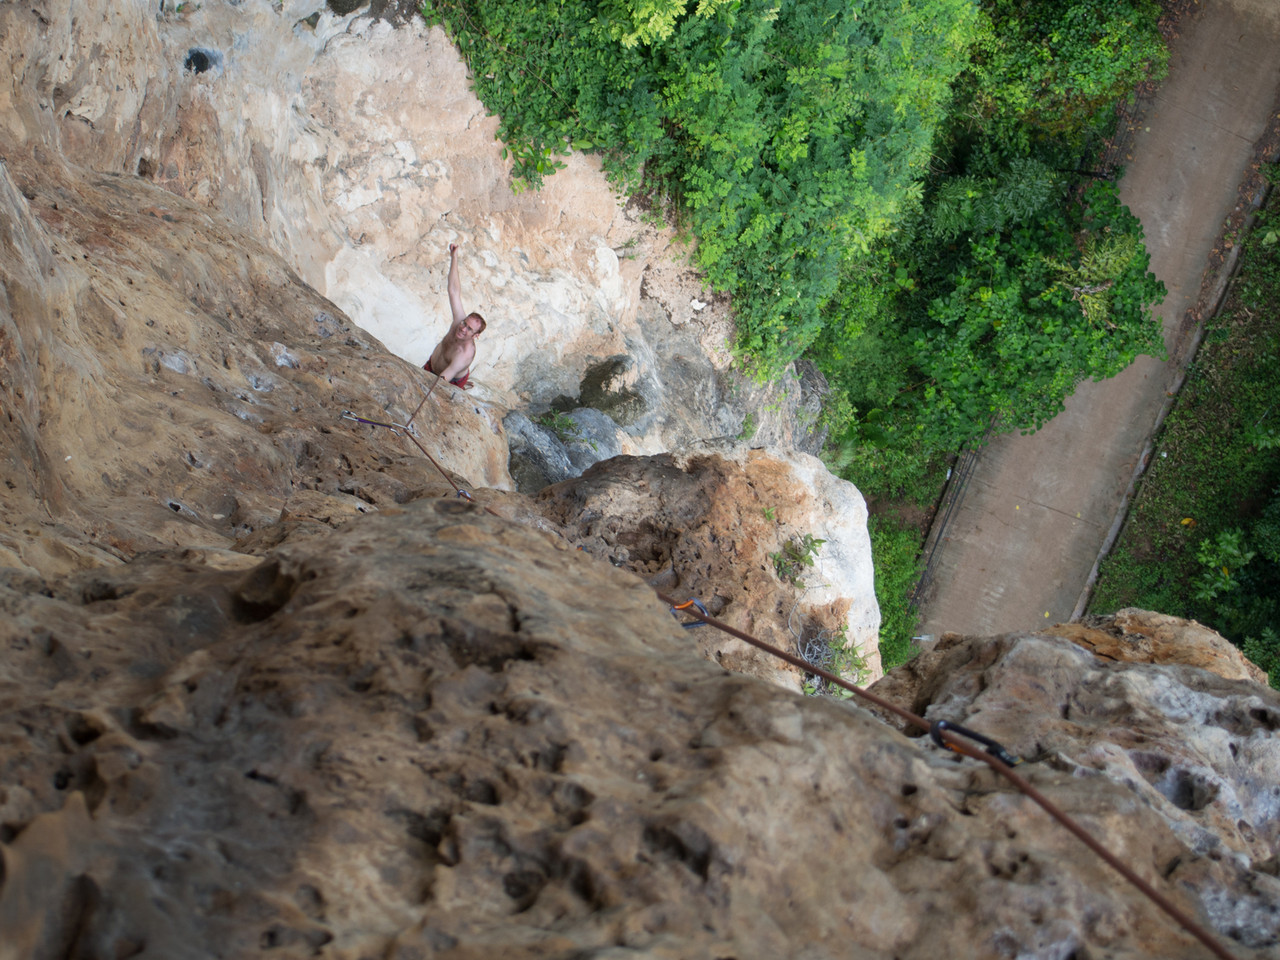 View from the top of 'Beauty and Beast', a perfect 3 pitch 6b climb